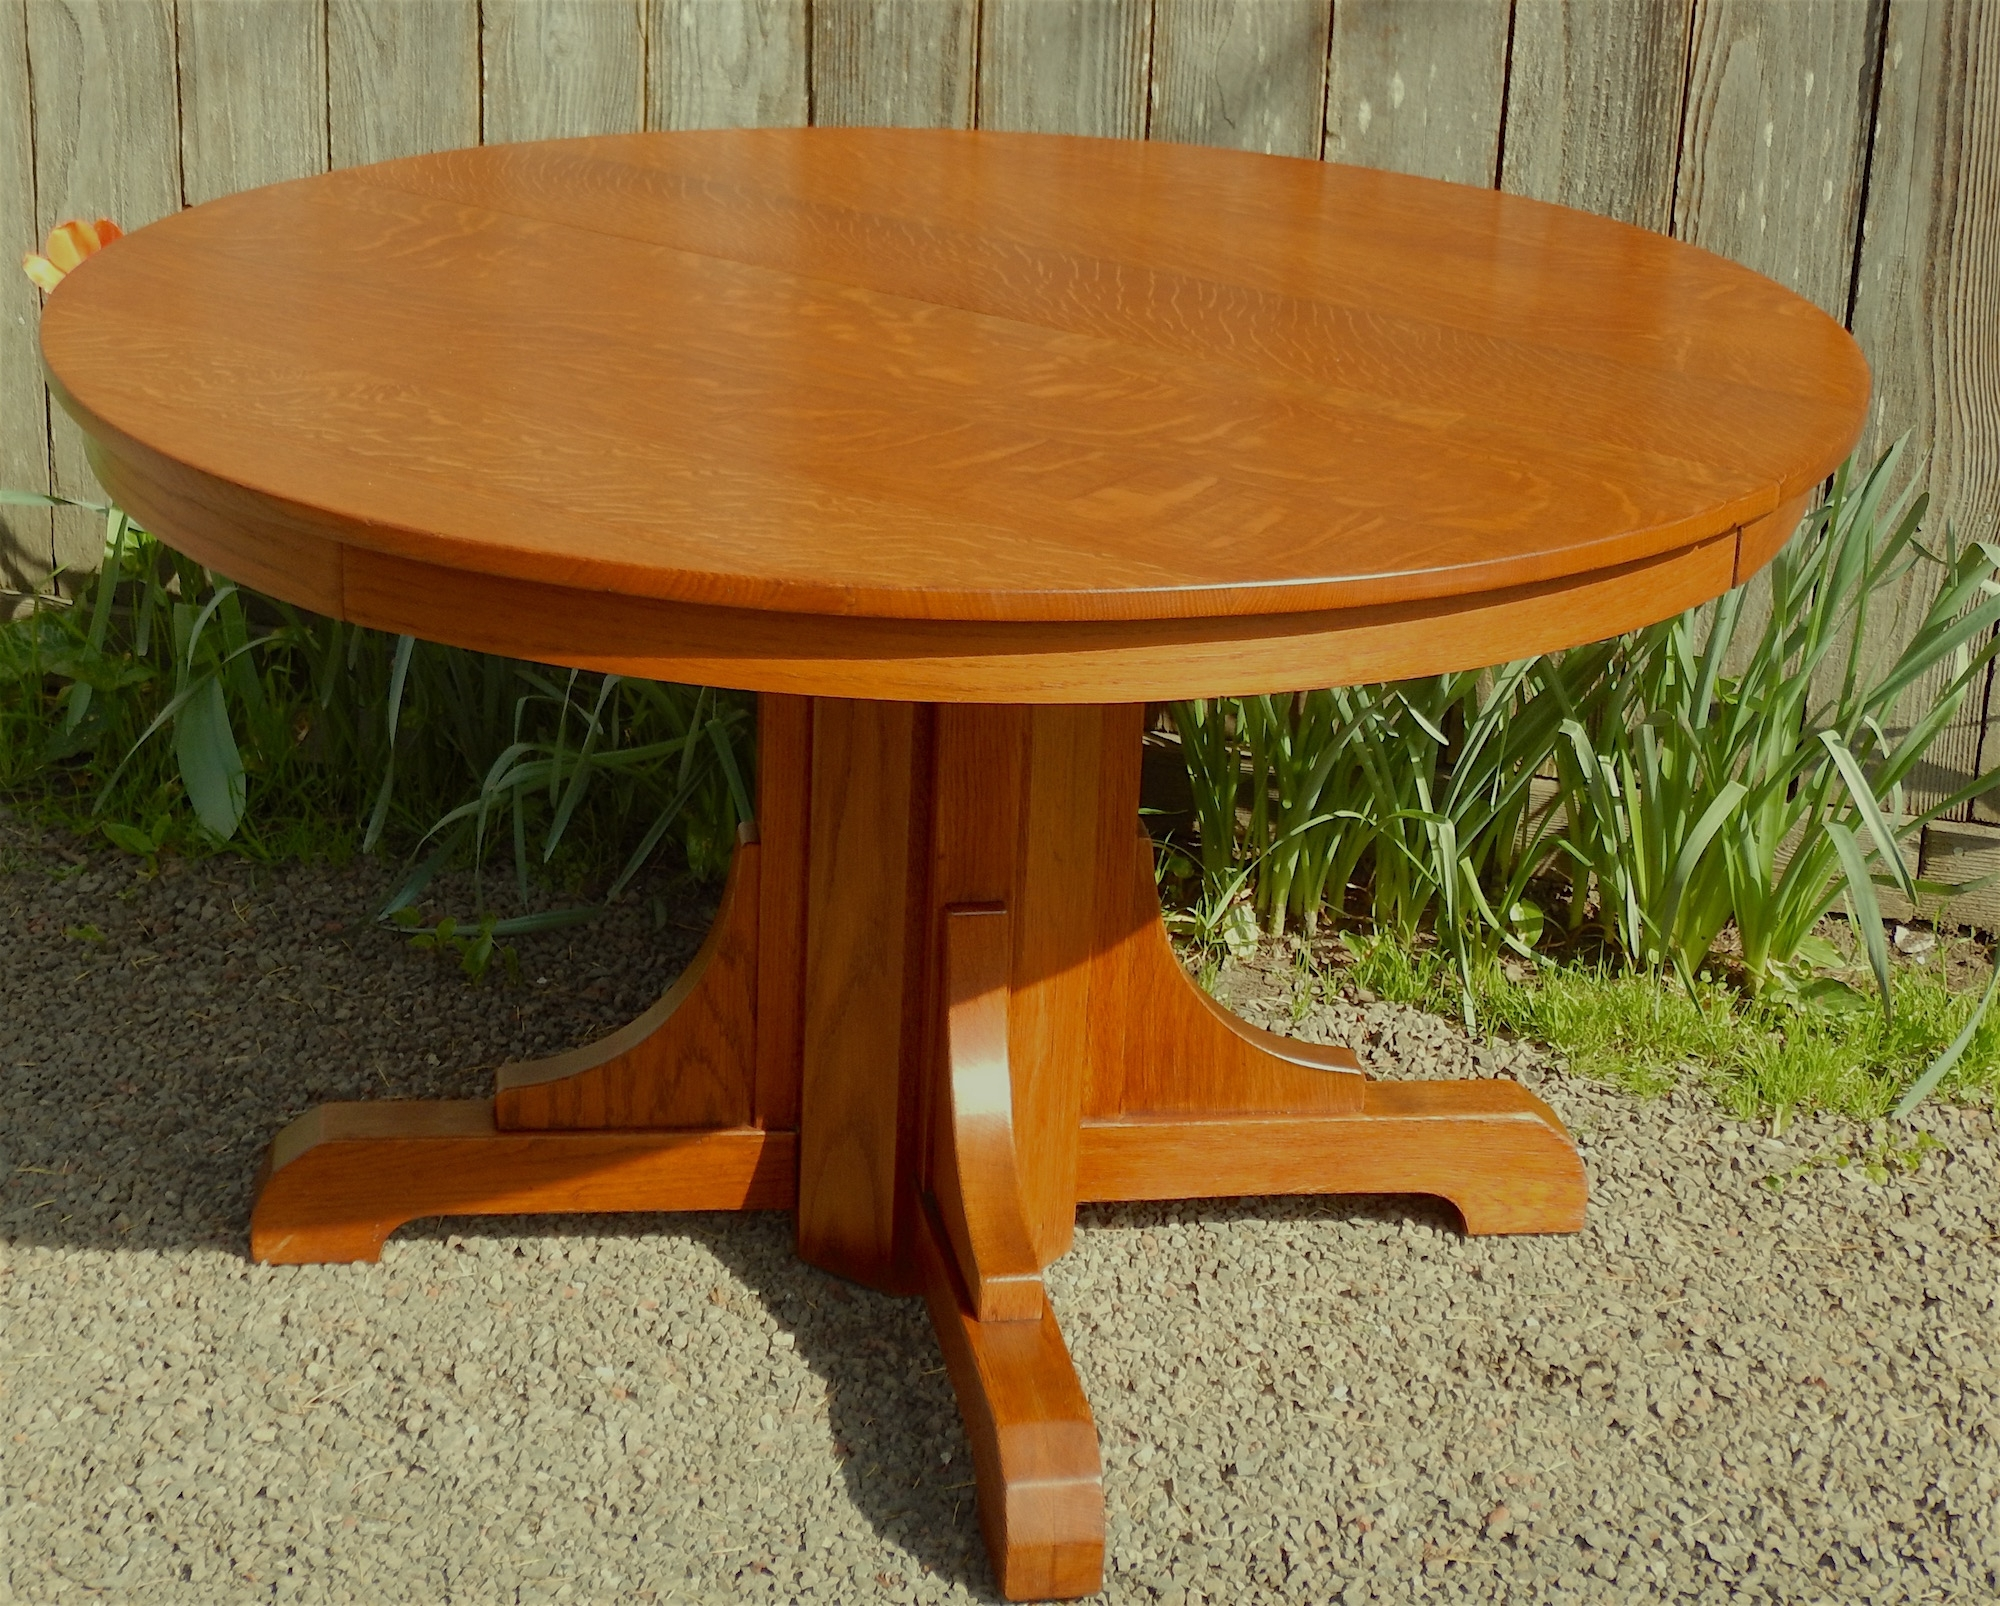 Craftsman Round Dining Tables Pertaining To Famous Voorhees Craftsman Mission Oak Furniture – Gustav Stickley Vintage (View 1 of 25)